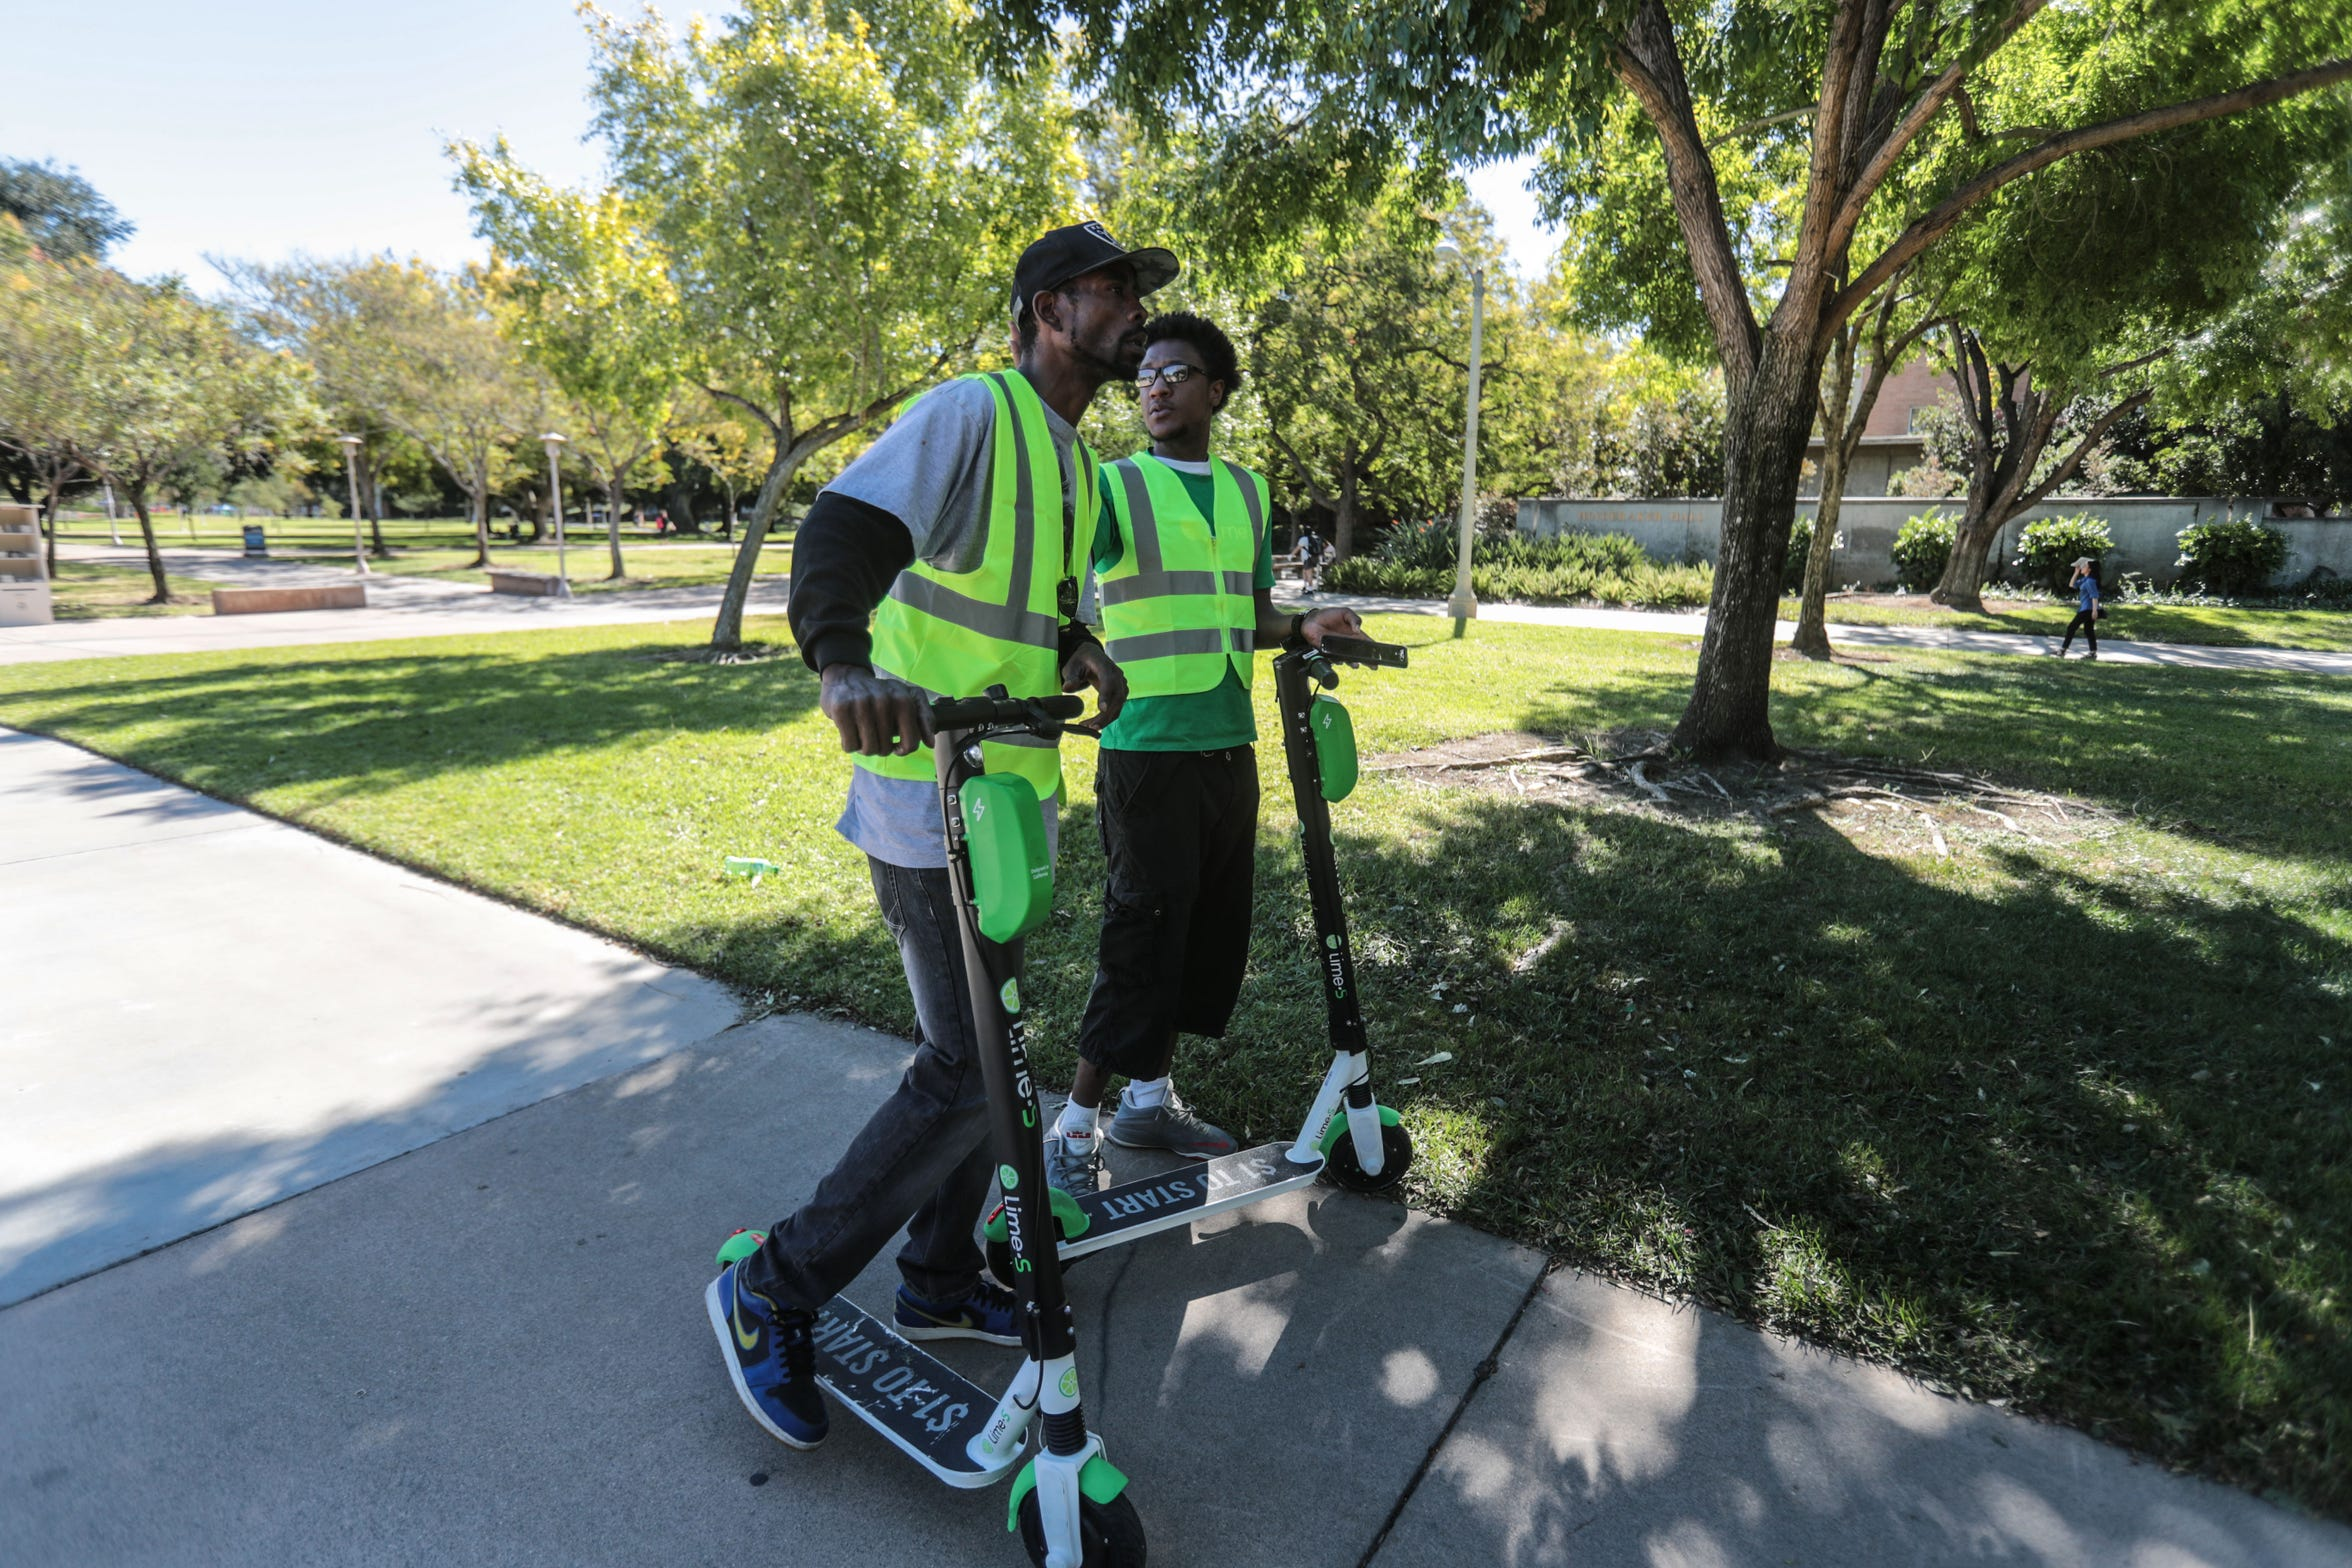 Trevor Carson and Omar Hill, both operators with Lime scooter company, look for scooters on the University of California, Riverside campus on Oct. 18, 2018. The two gather up the electric scooters to charge.